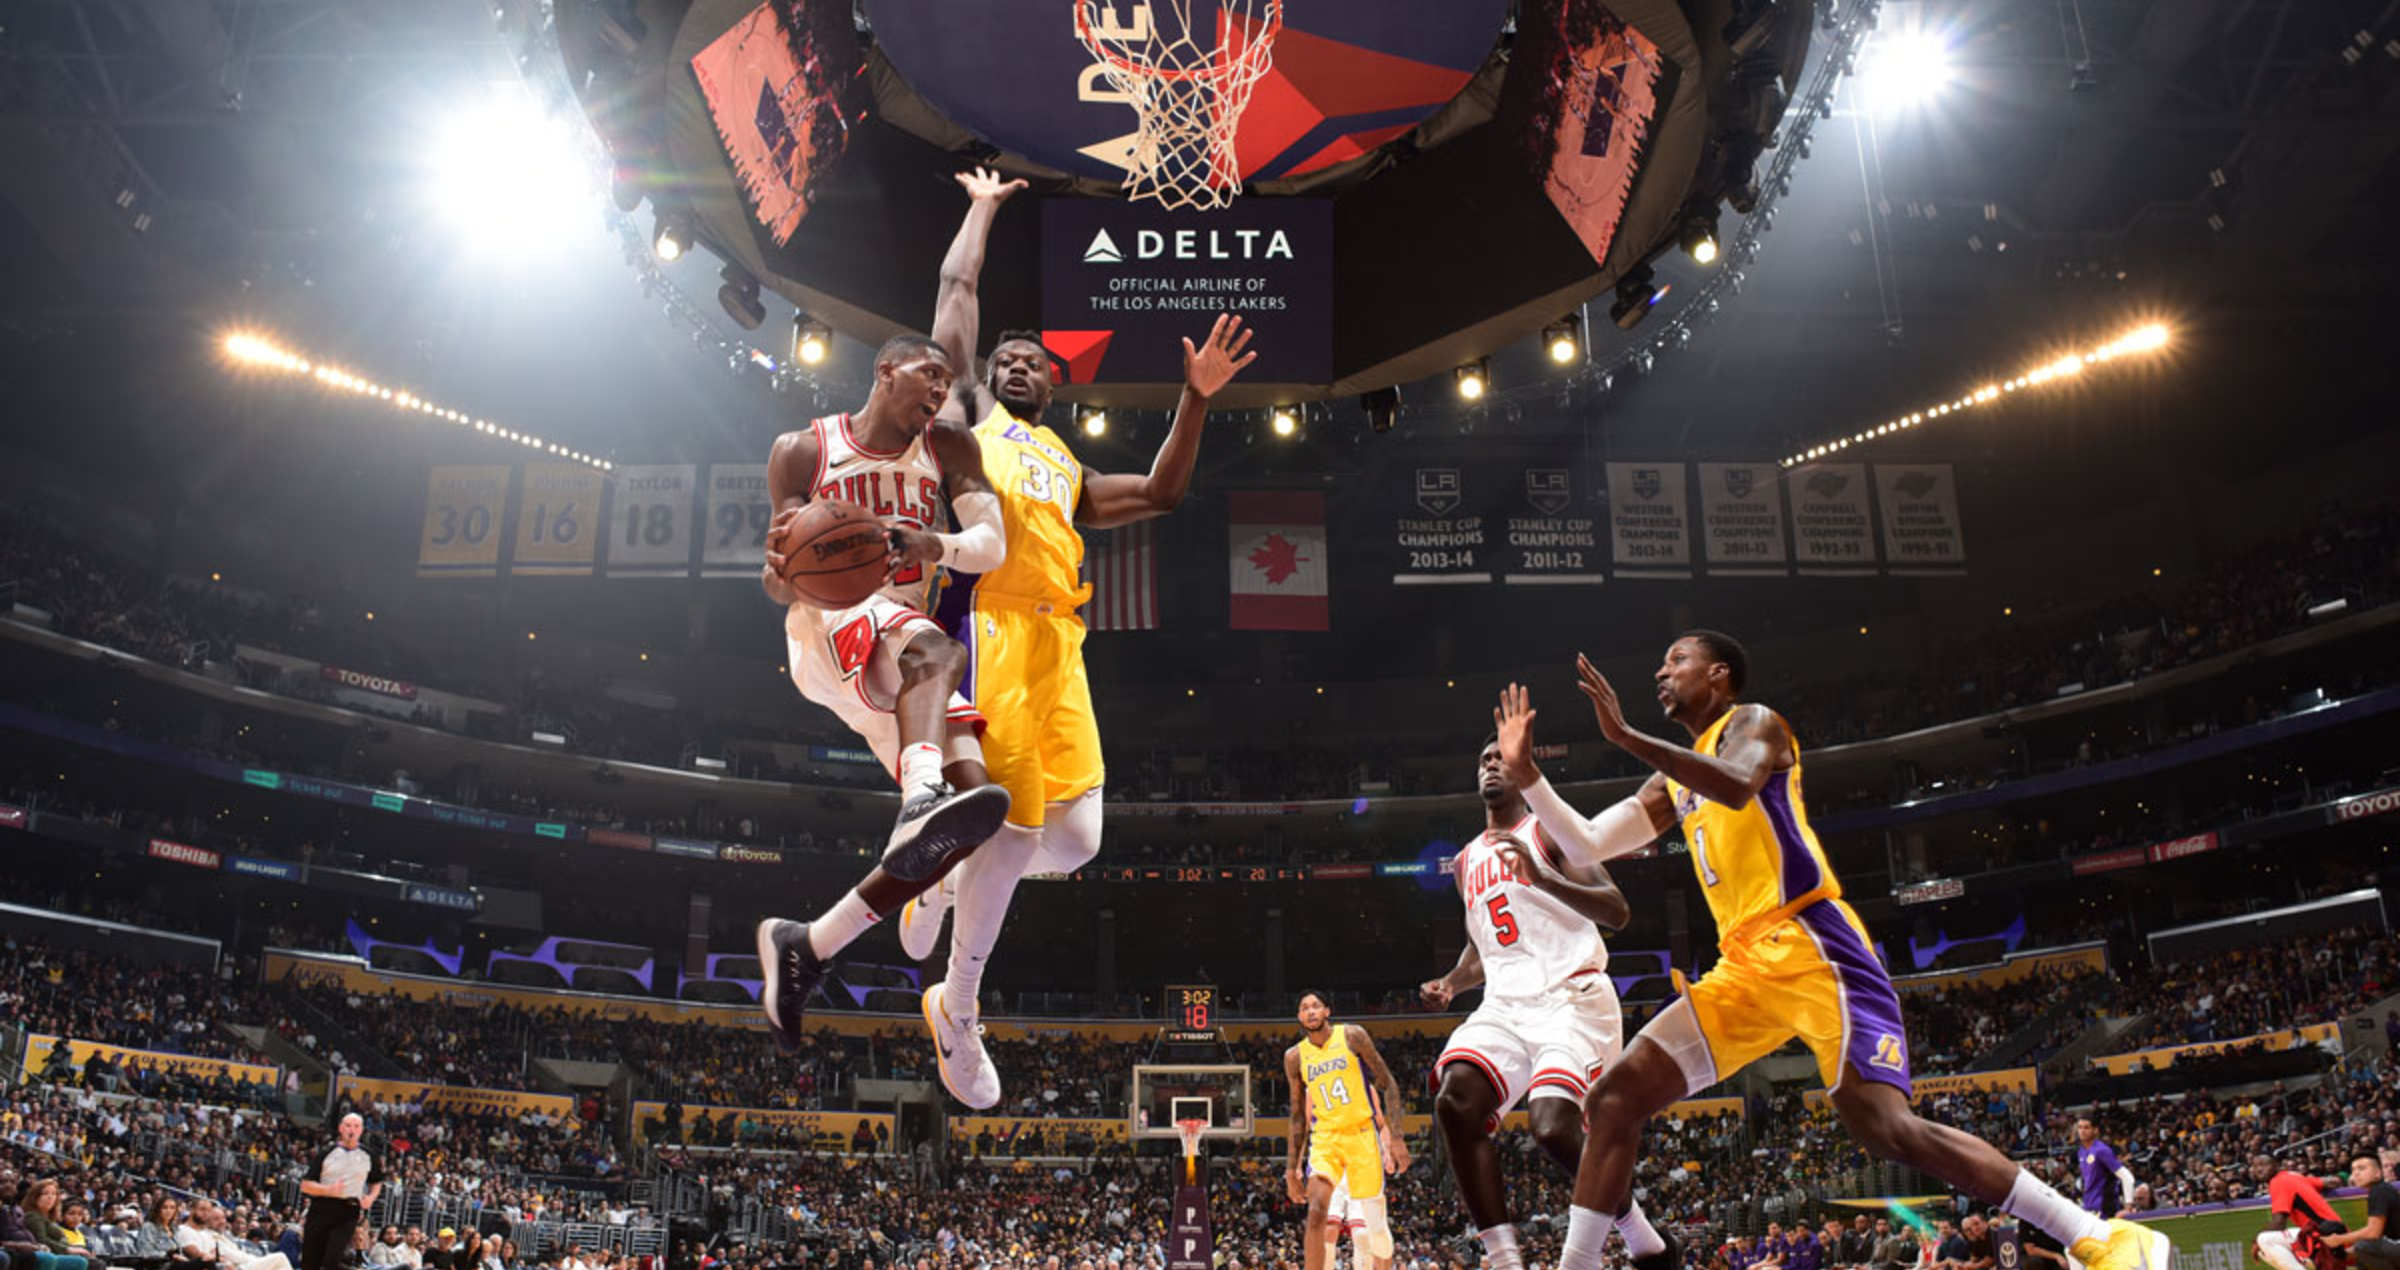 Kris Dunn #32 of the Chicago Bulls looks to pass against the Los Angeles Lakers on November 21, 2017 at STAPLES Center in Los Angeles, California.